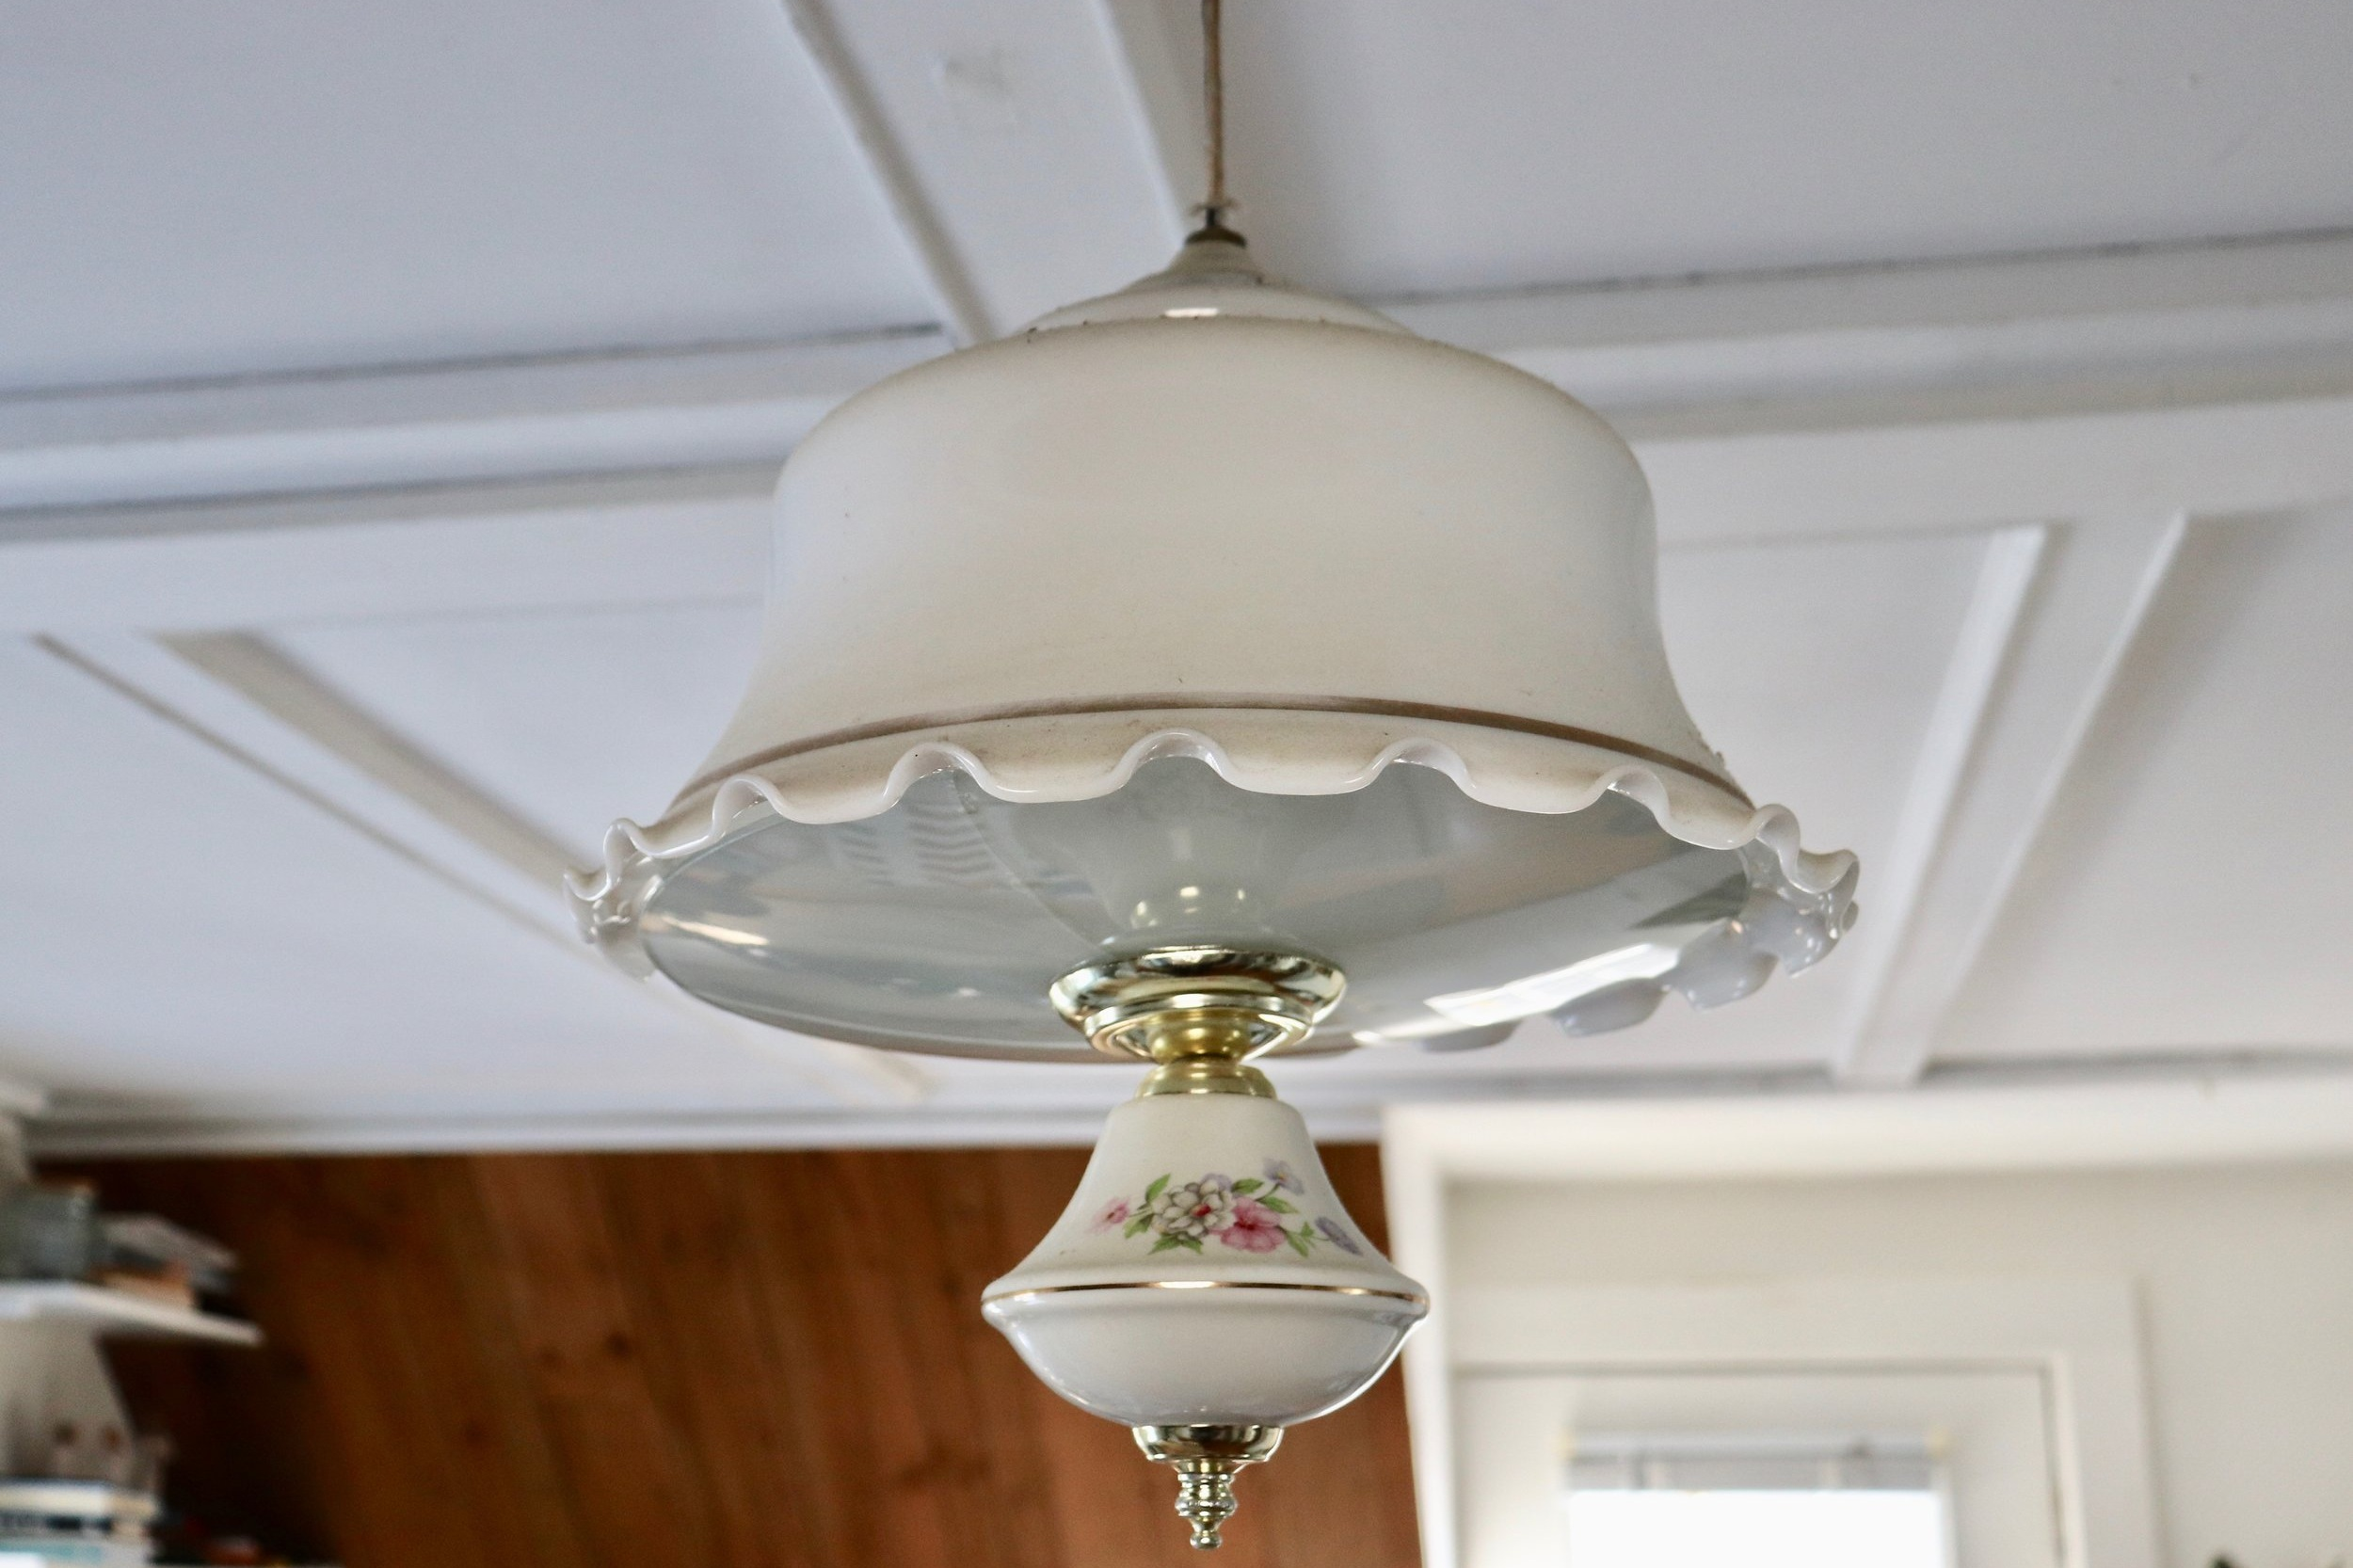 The beloved light fixture in our kitchen